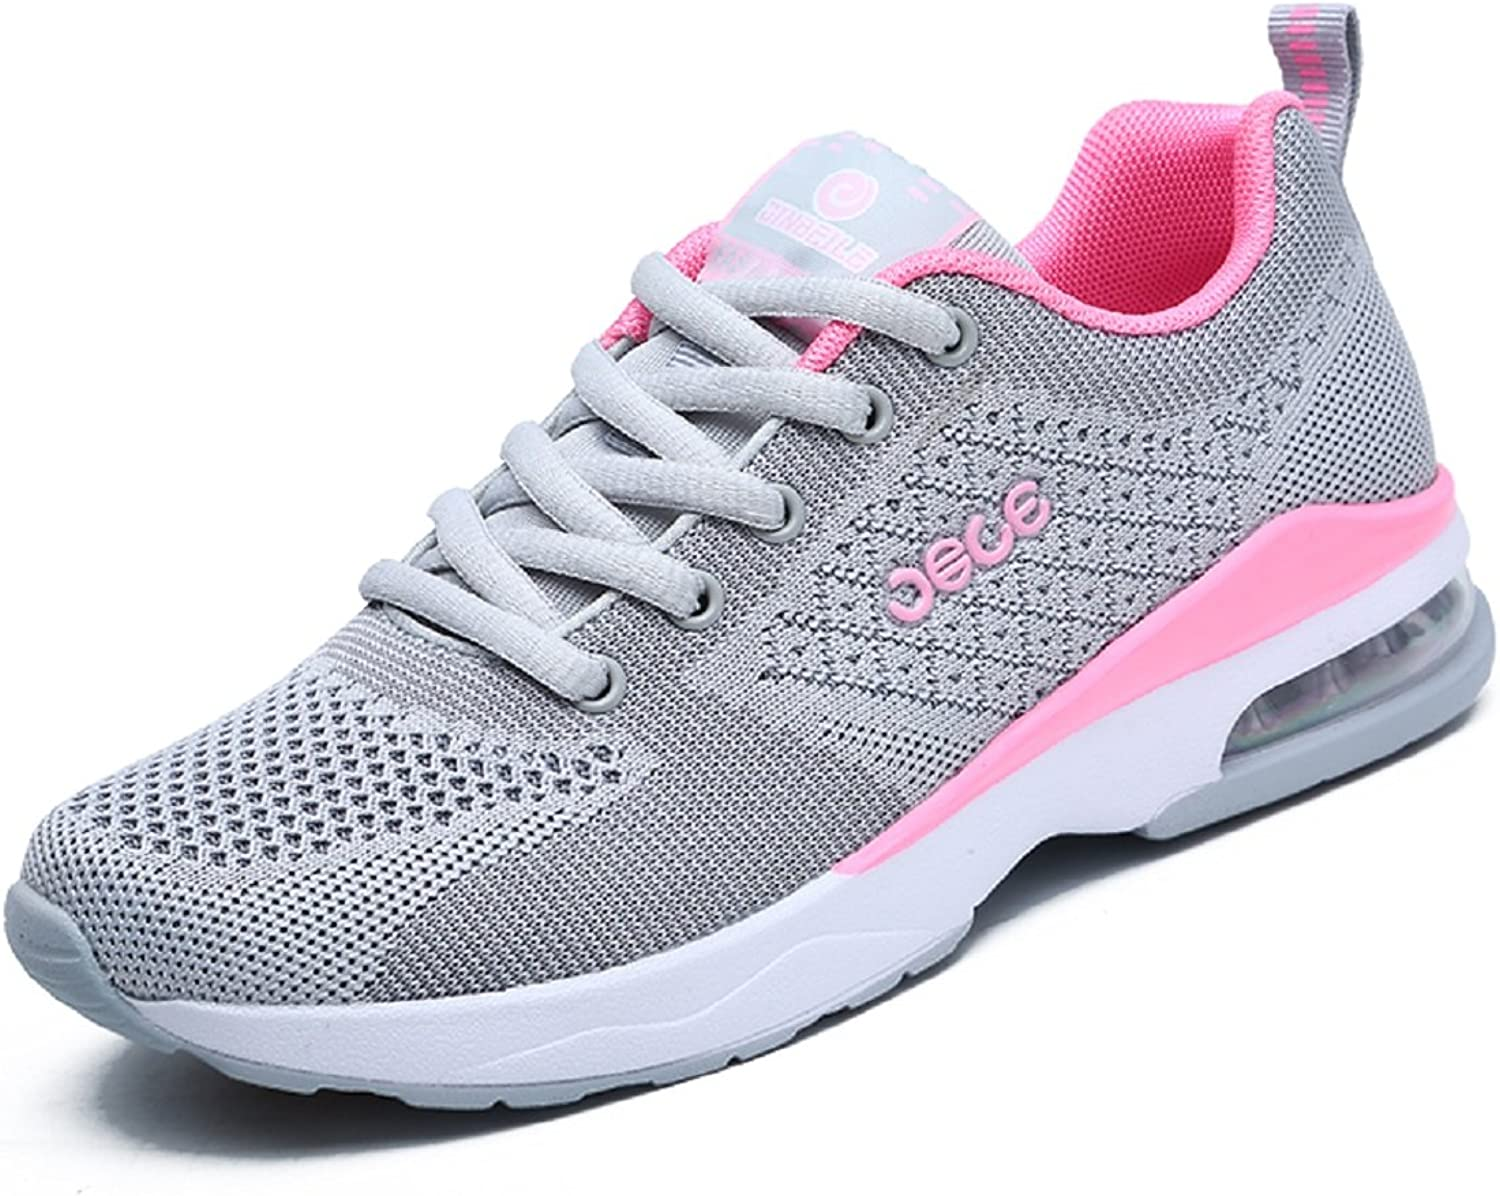 Running shoes Air Cushion Casual Sports Yoga Fitness Gym Exercise Low Top Lace Up Anti- Slip Womens Sneakers